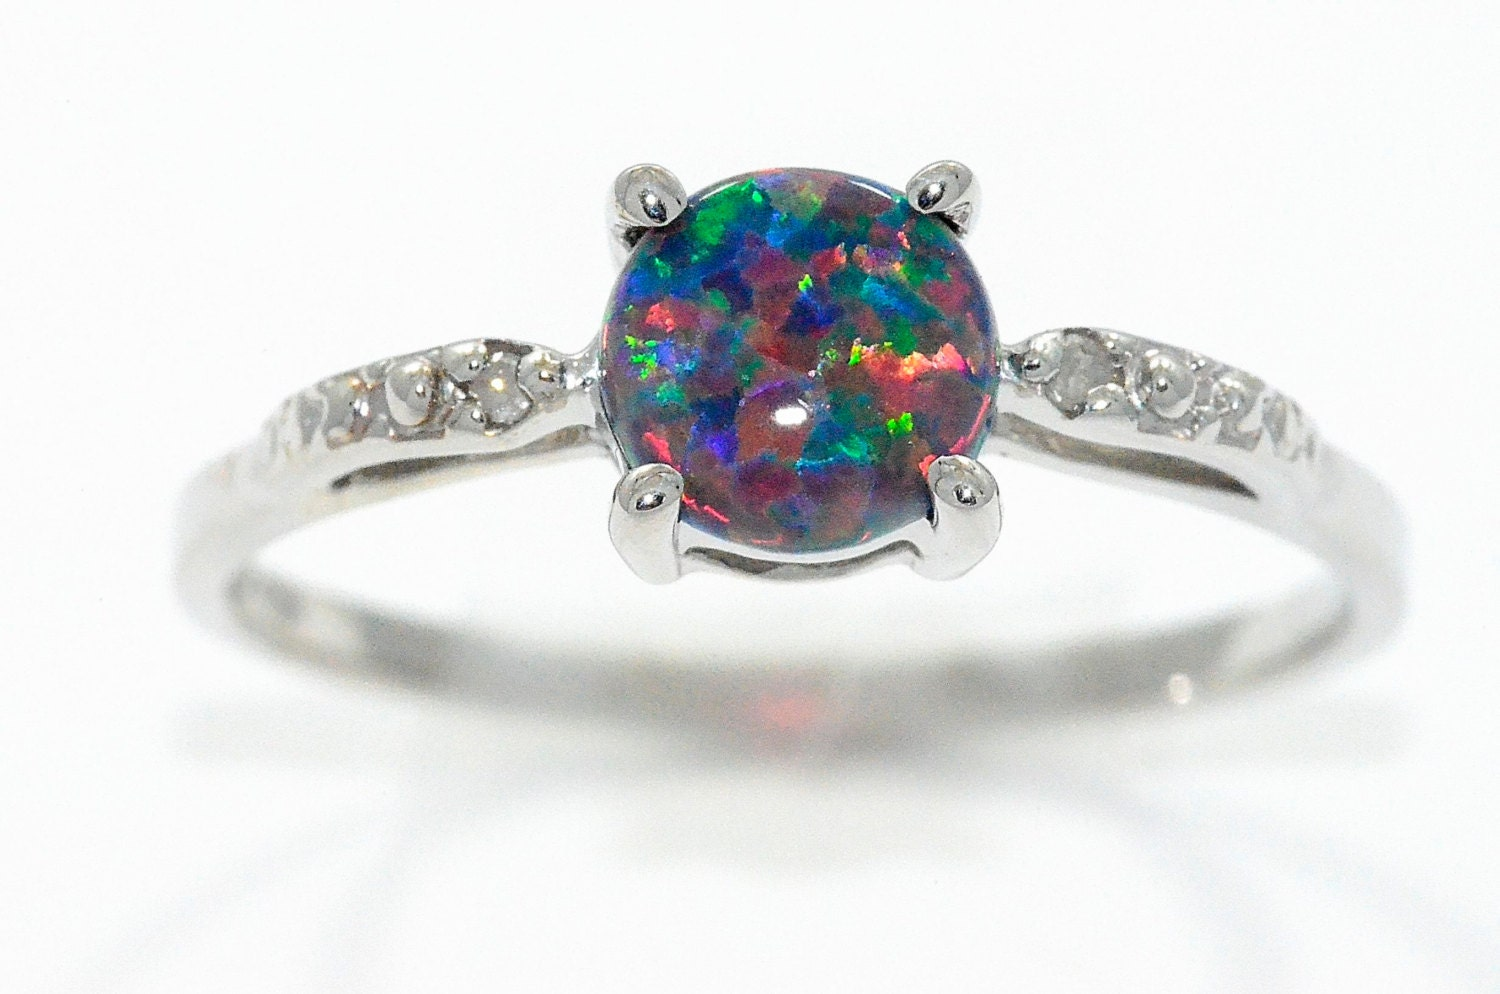 black opal diamond round ring 925 sterling silver rhodium finish - Opal Wedding Ring